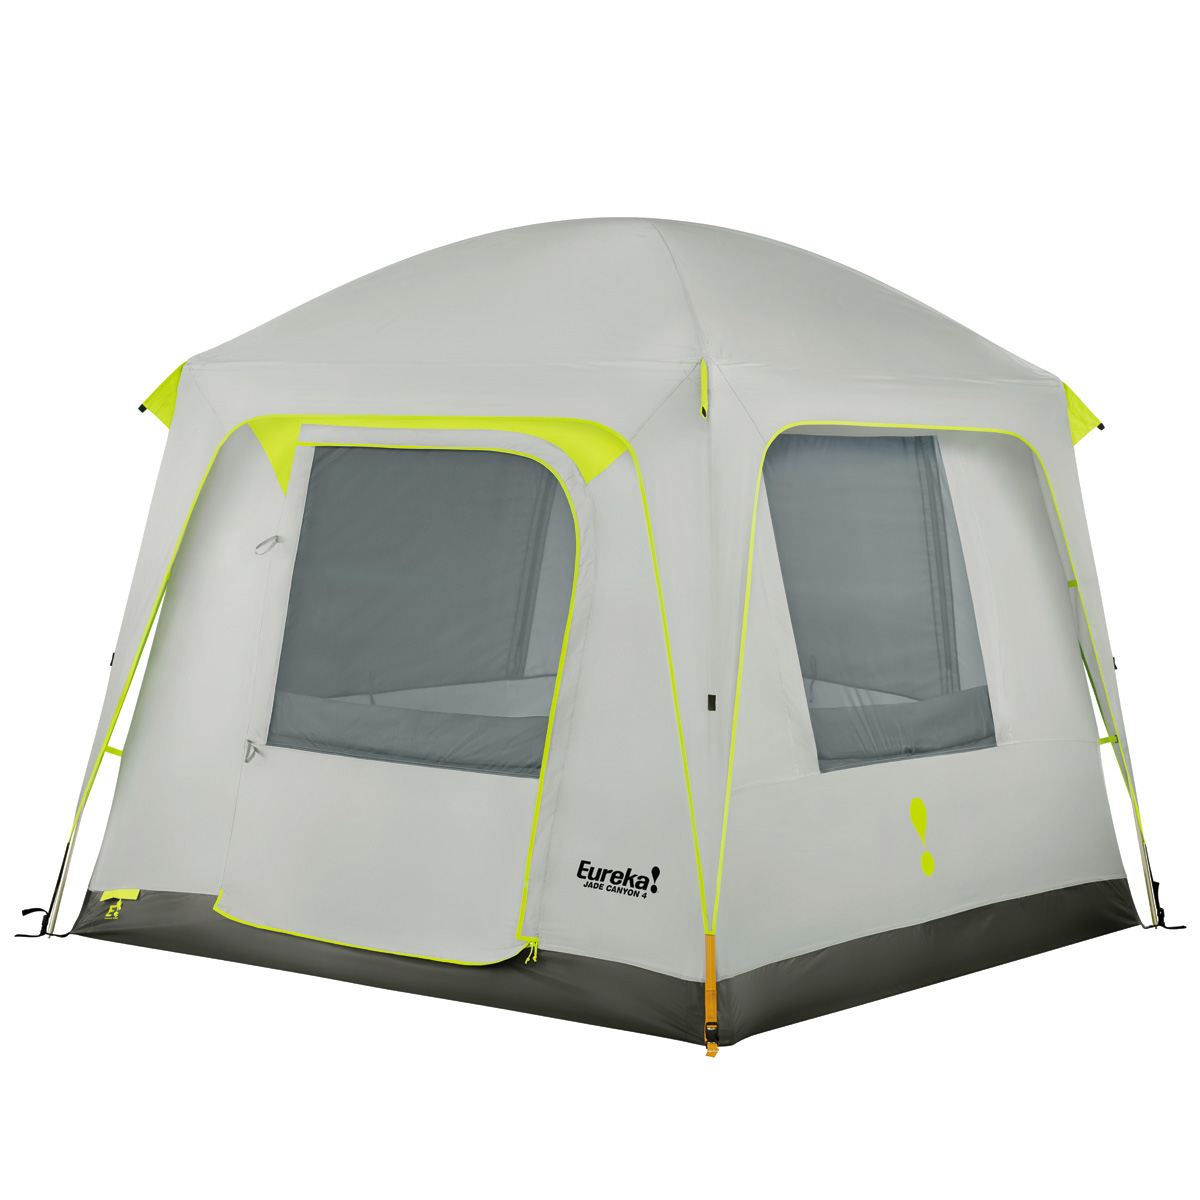 Jade canyon 4 person tent eureka for Cabine eureka ca